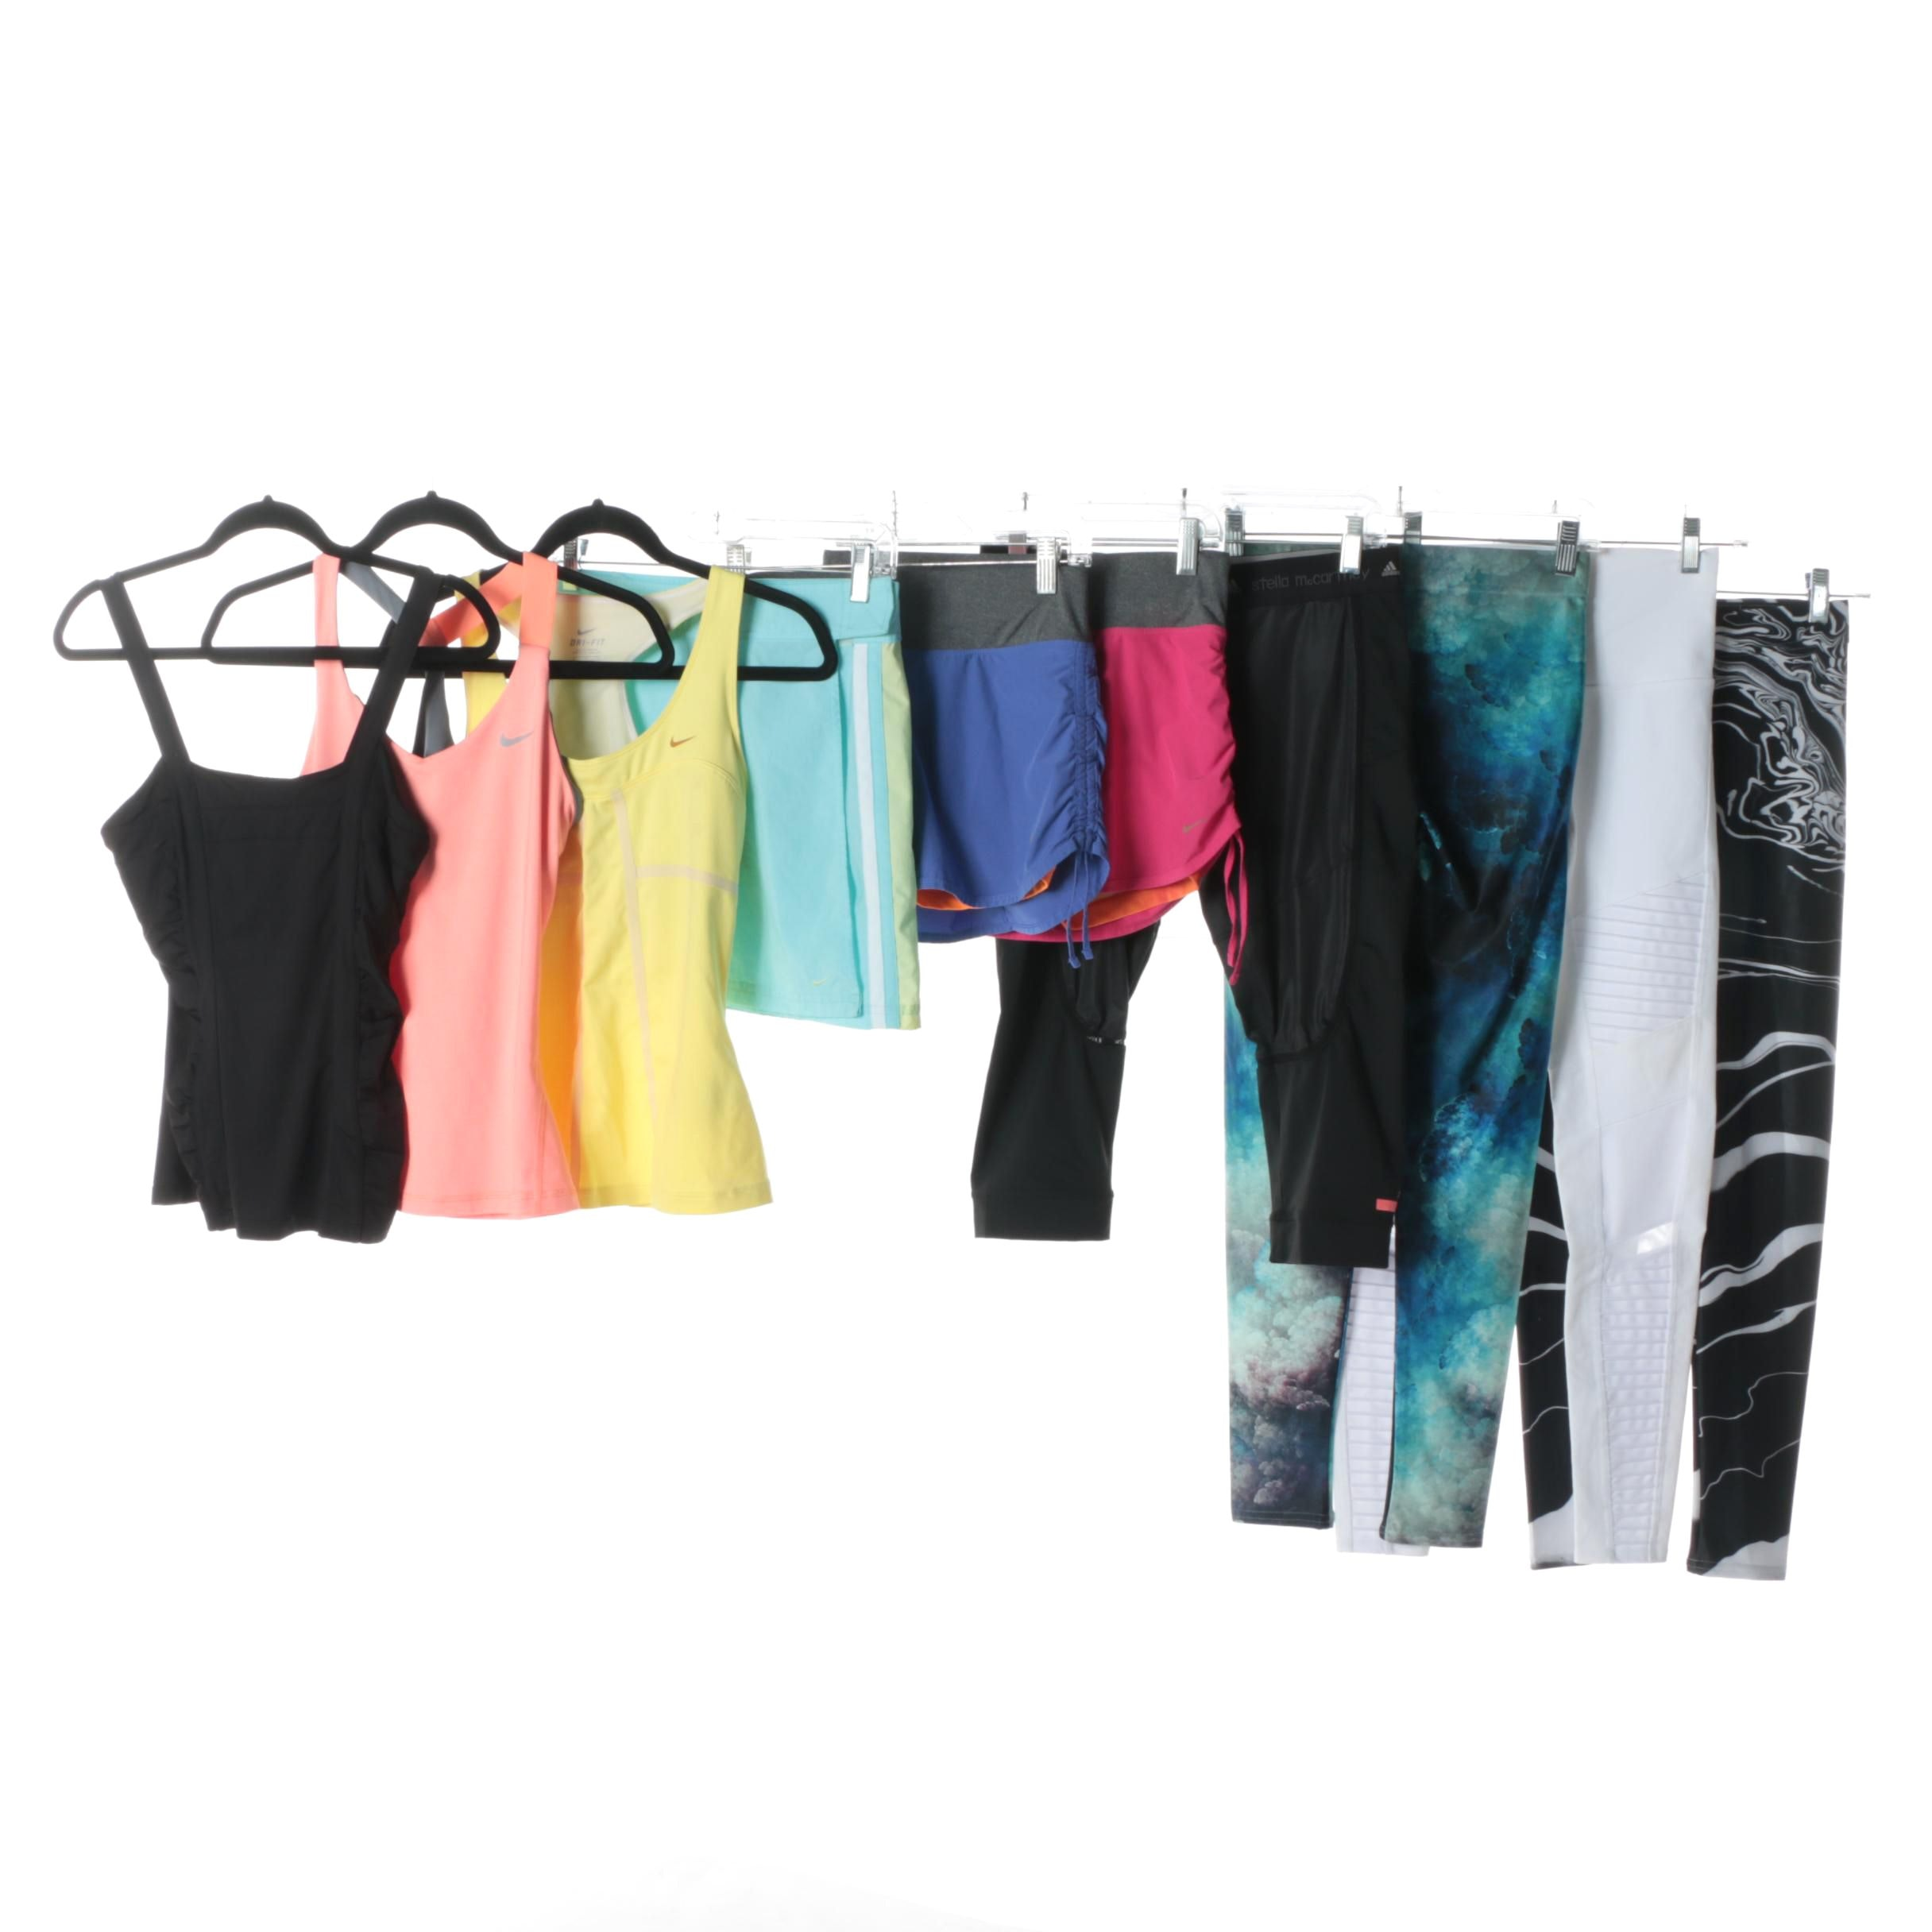 Women's Activewear Including Nike and Stella McCartney for Adidas